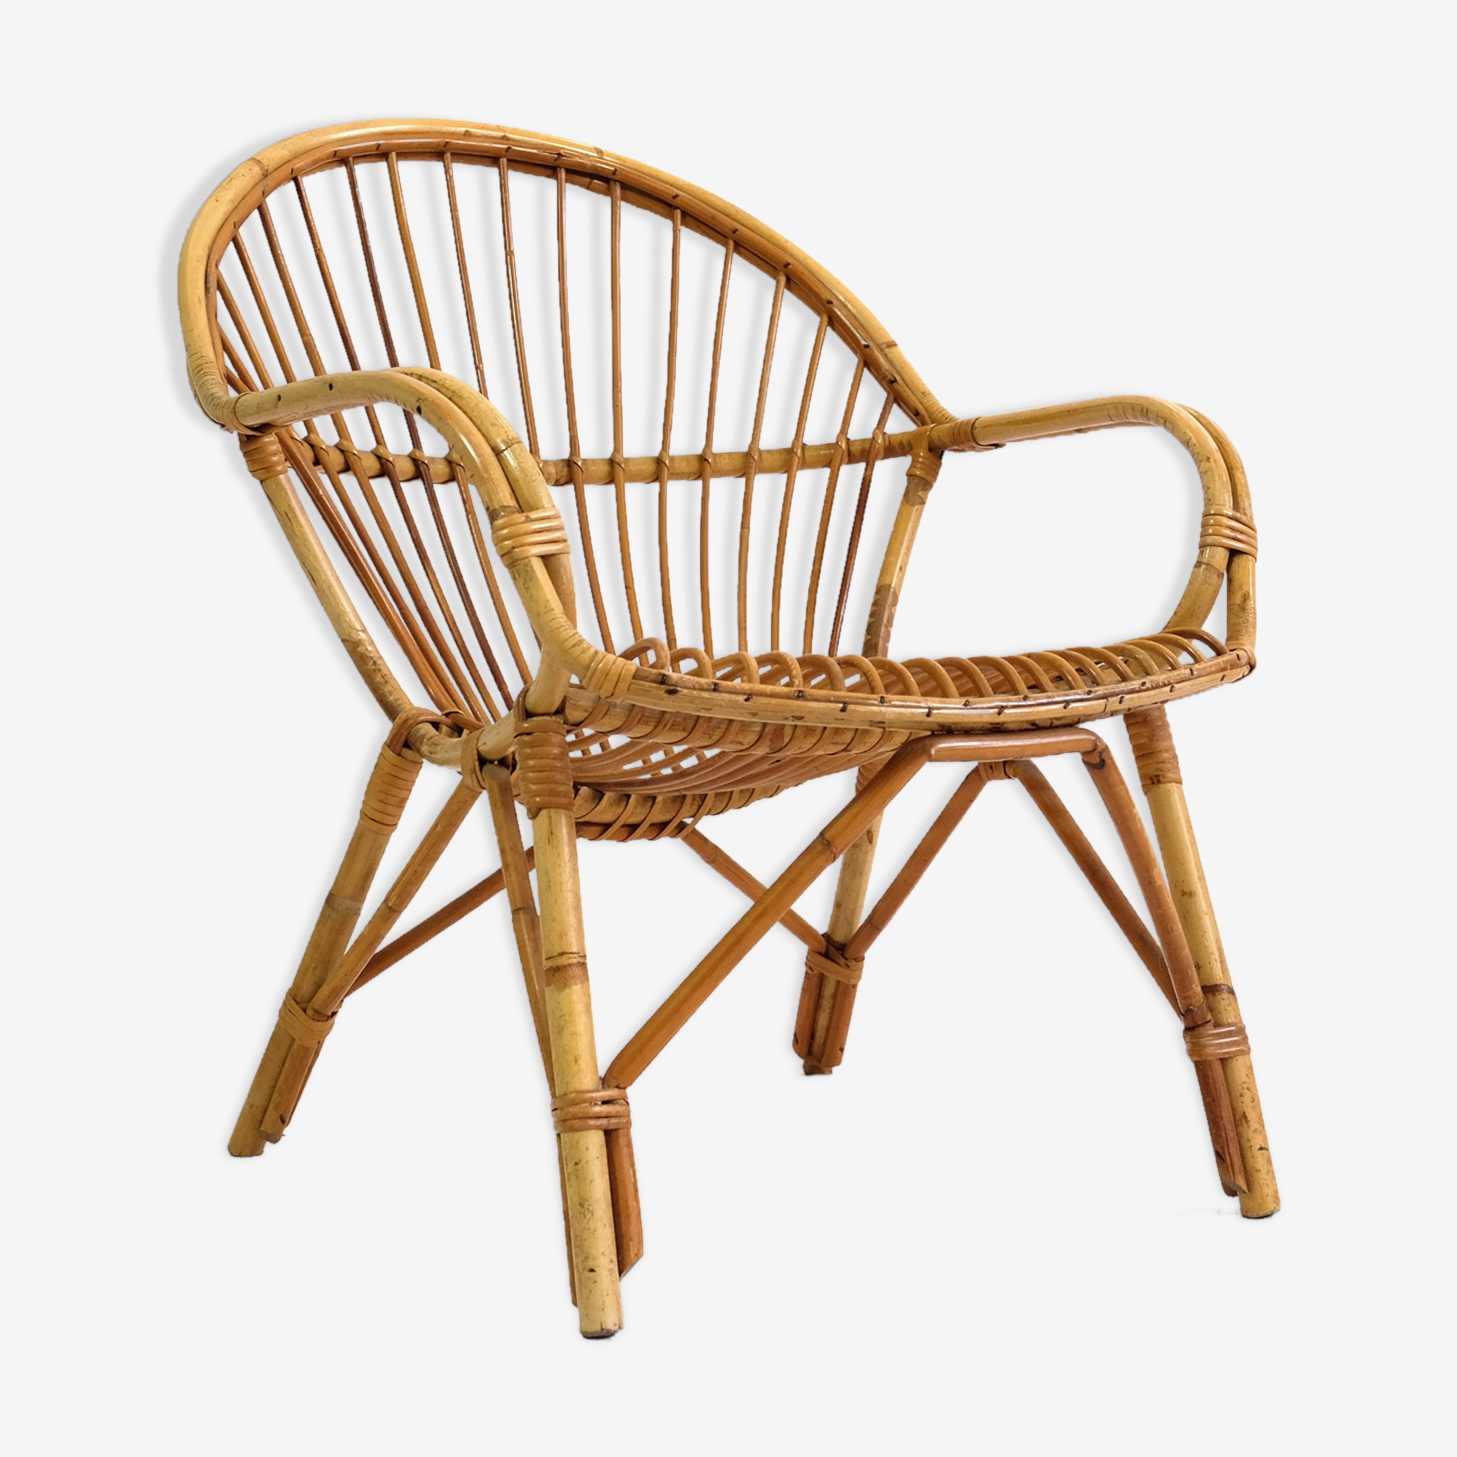 Chair rattan of 60-70 years.